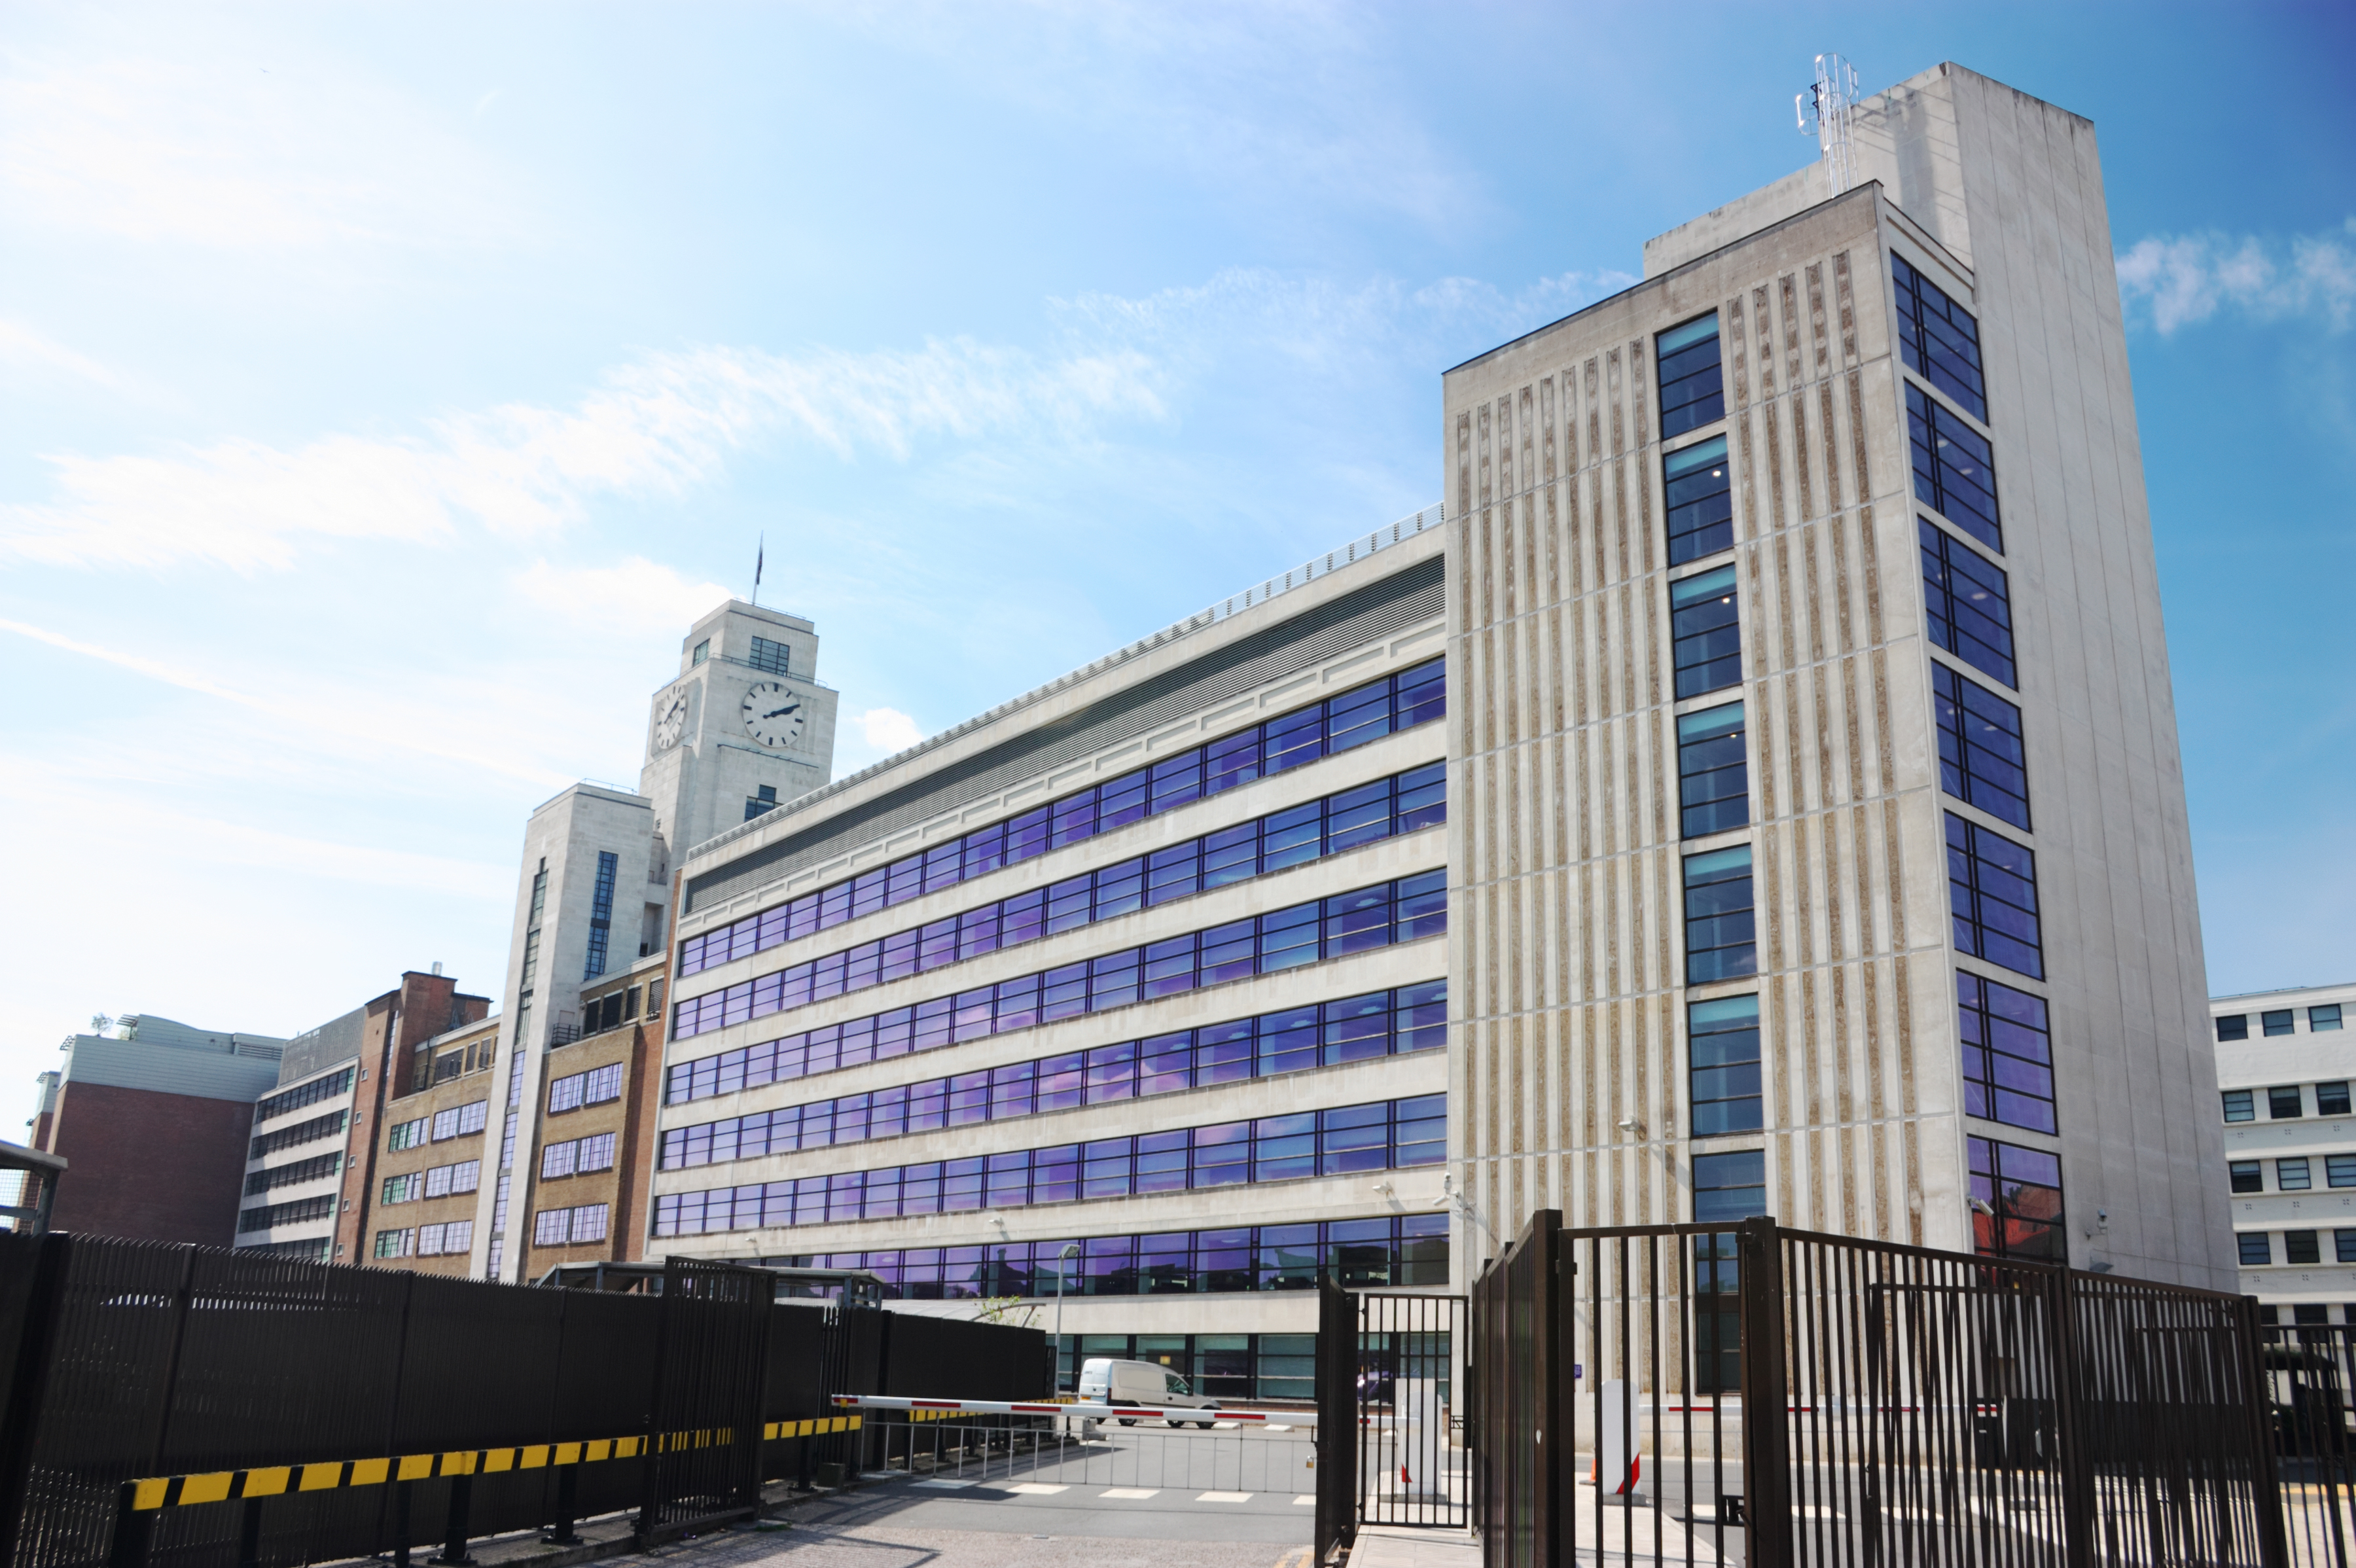 A picture of the National Audit Office